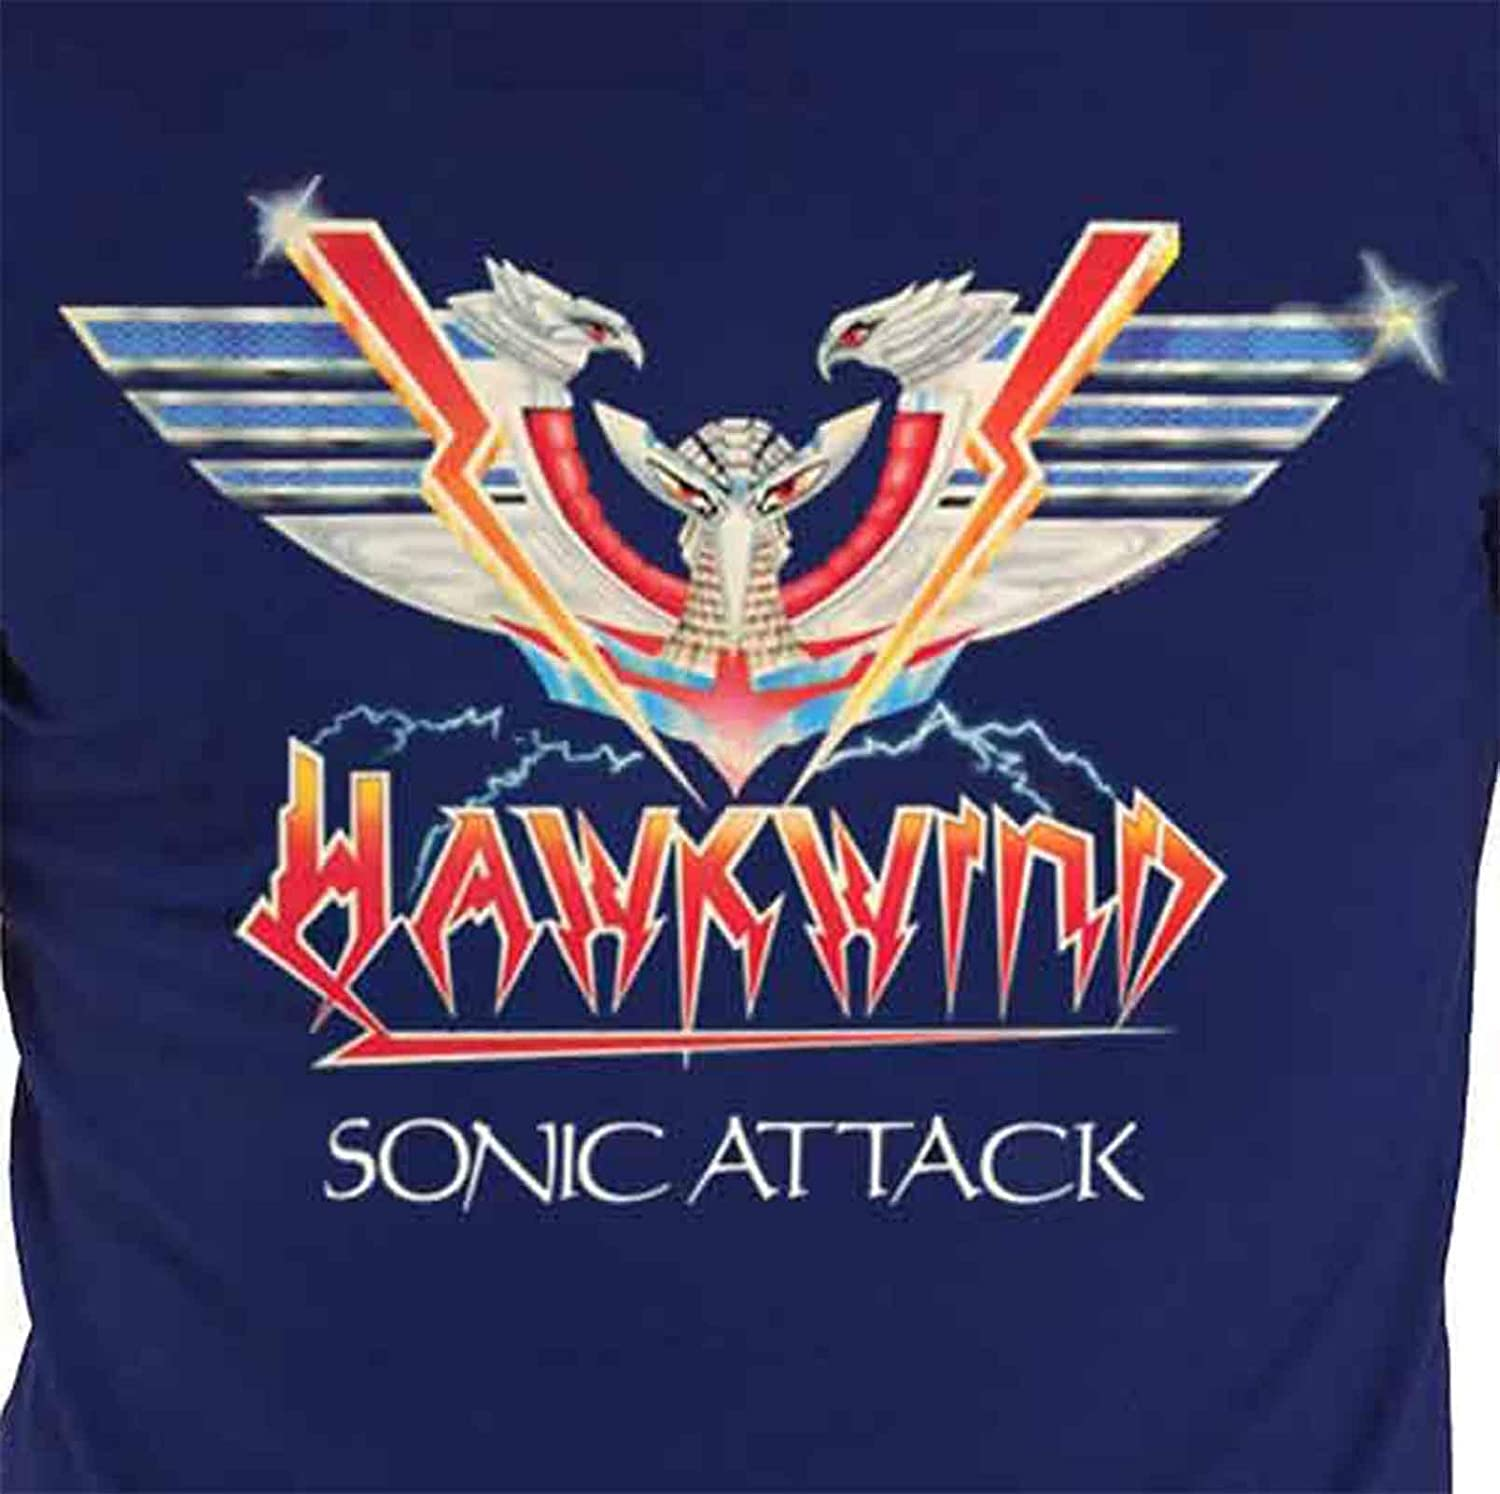 T-Shirt Hawkwind /'Sonic Attack/' Navy NEW /& OFFICIAL!